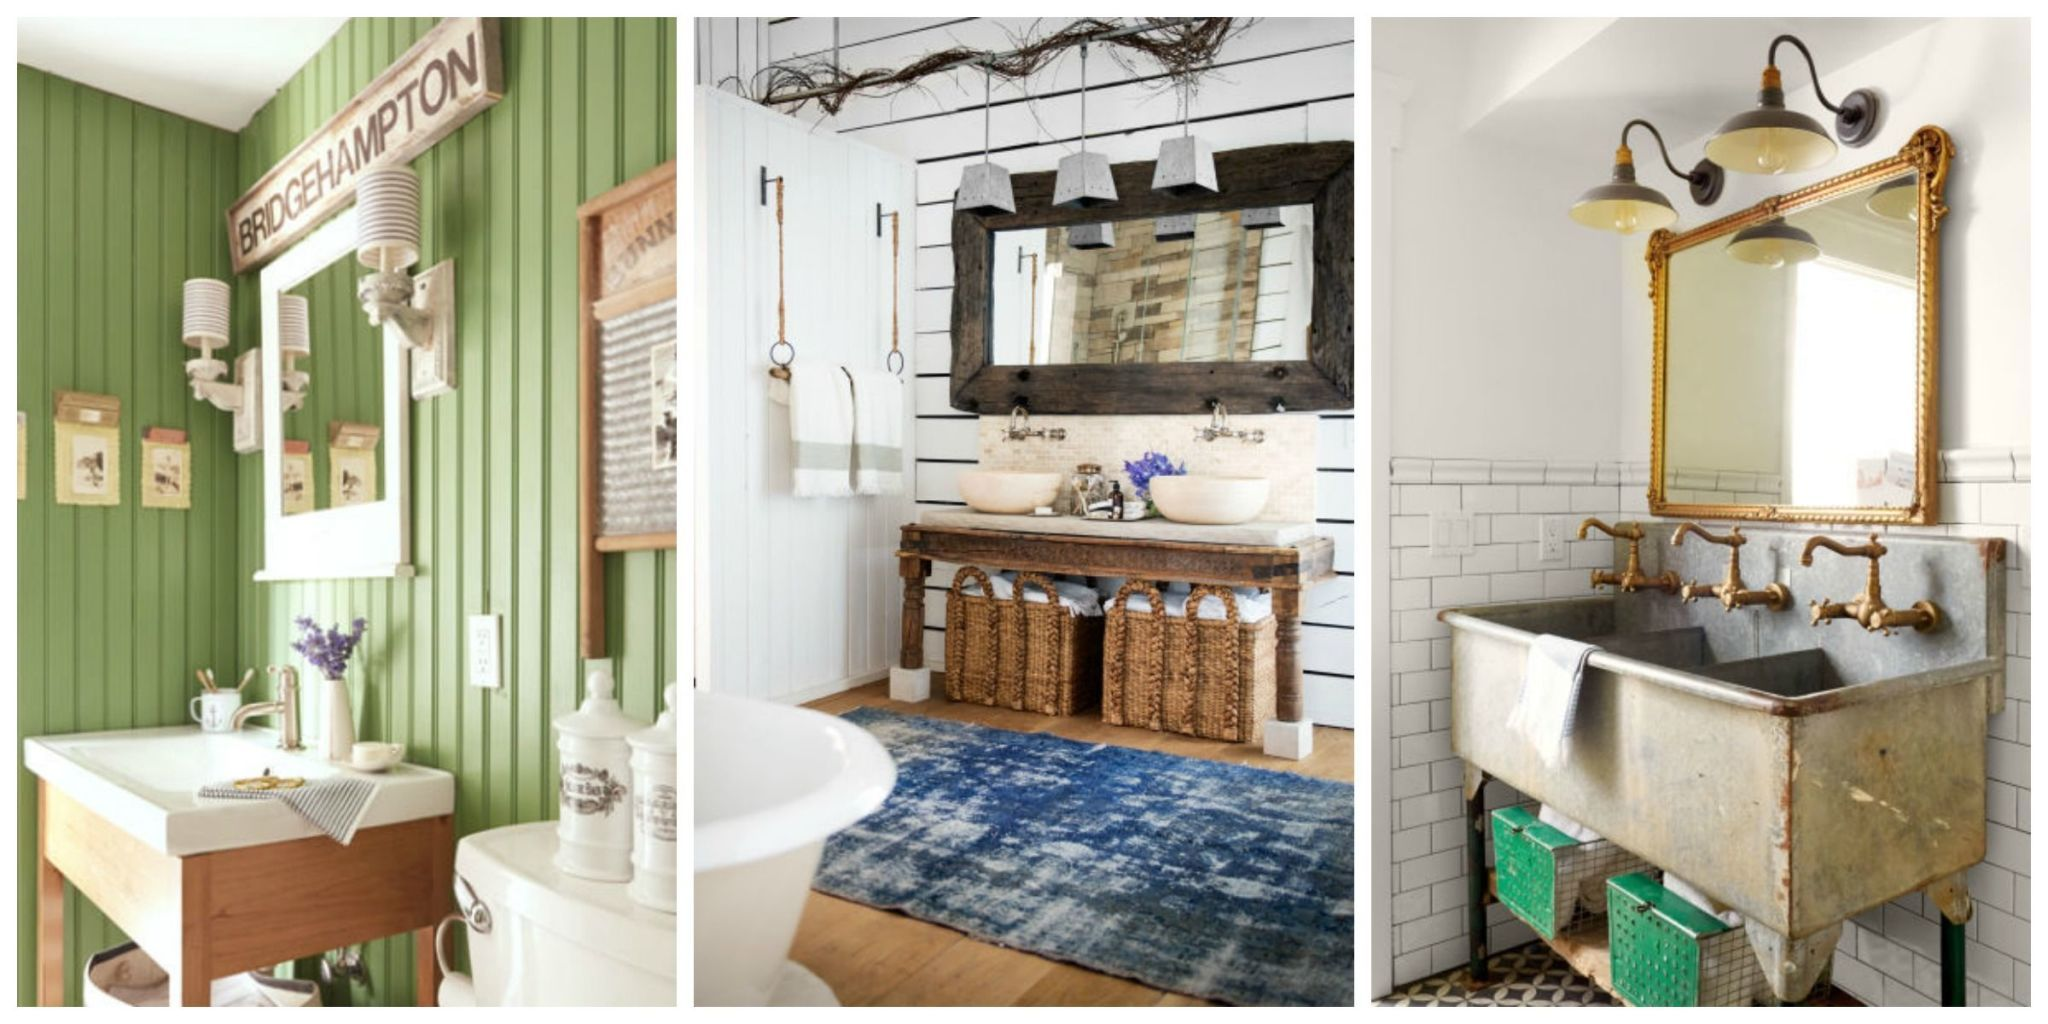 Awesome From Vintage Fixtures To Bold Wallpaper Patterns, These Beautiful Bathroom  Design Ideas Will Make Your Homeu0027s Smallest Room The Most Peaceful Spot In  The ...